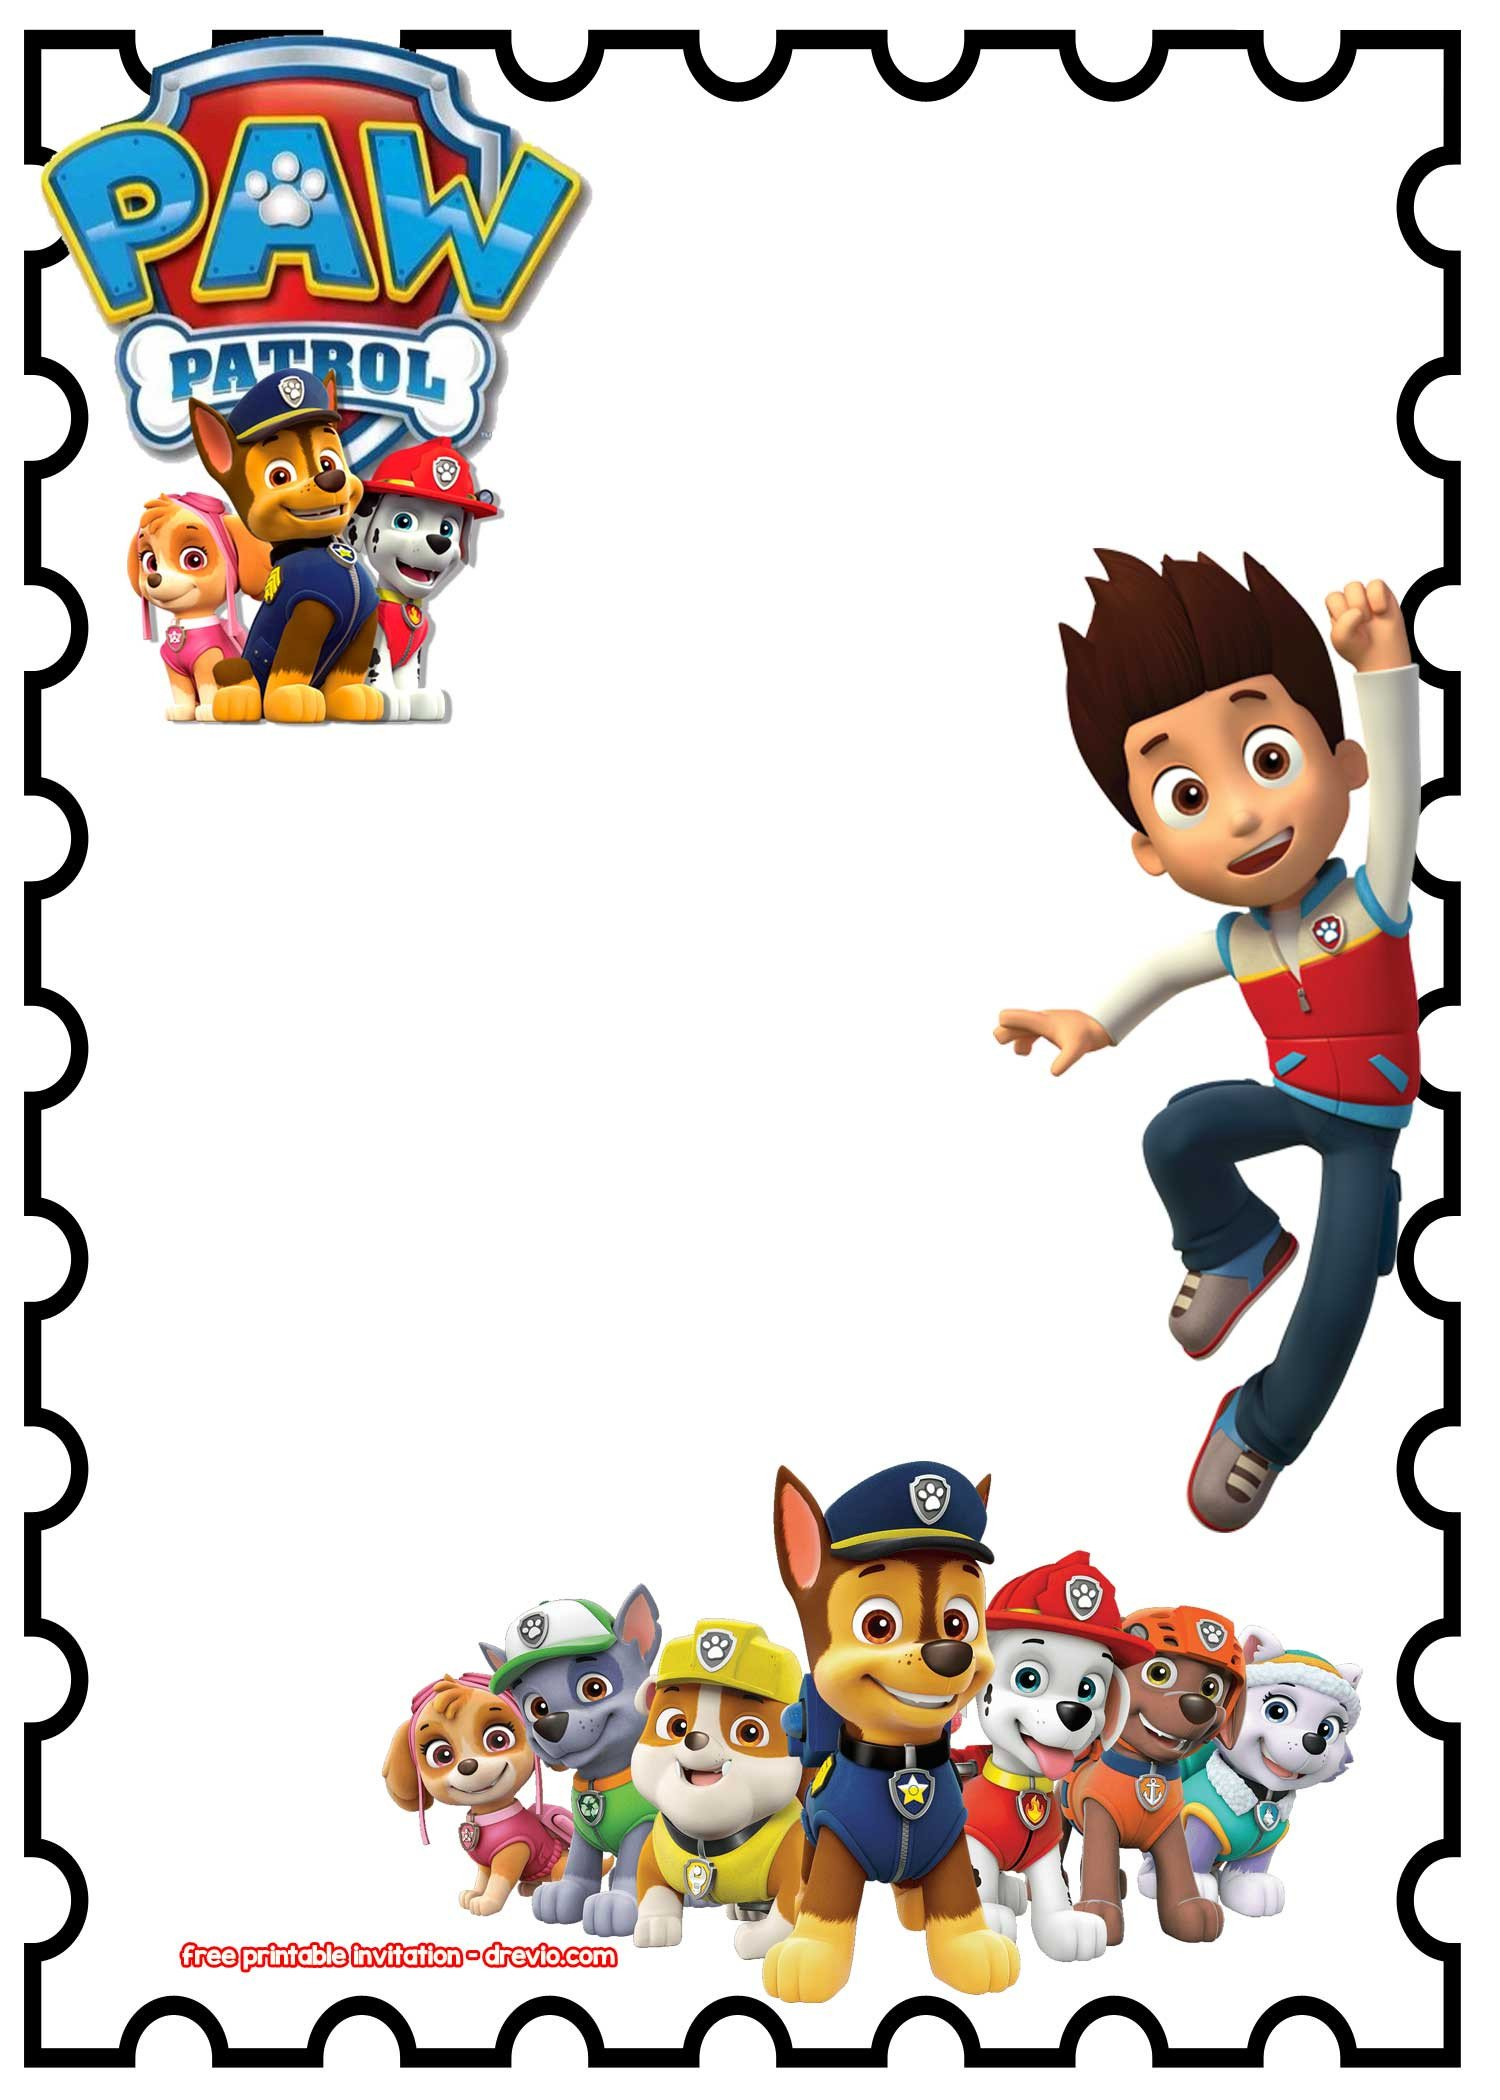 Paw Patrol Invitation Templates Free Printable Paw Patrol Birthday Invitation Chalkboard